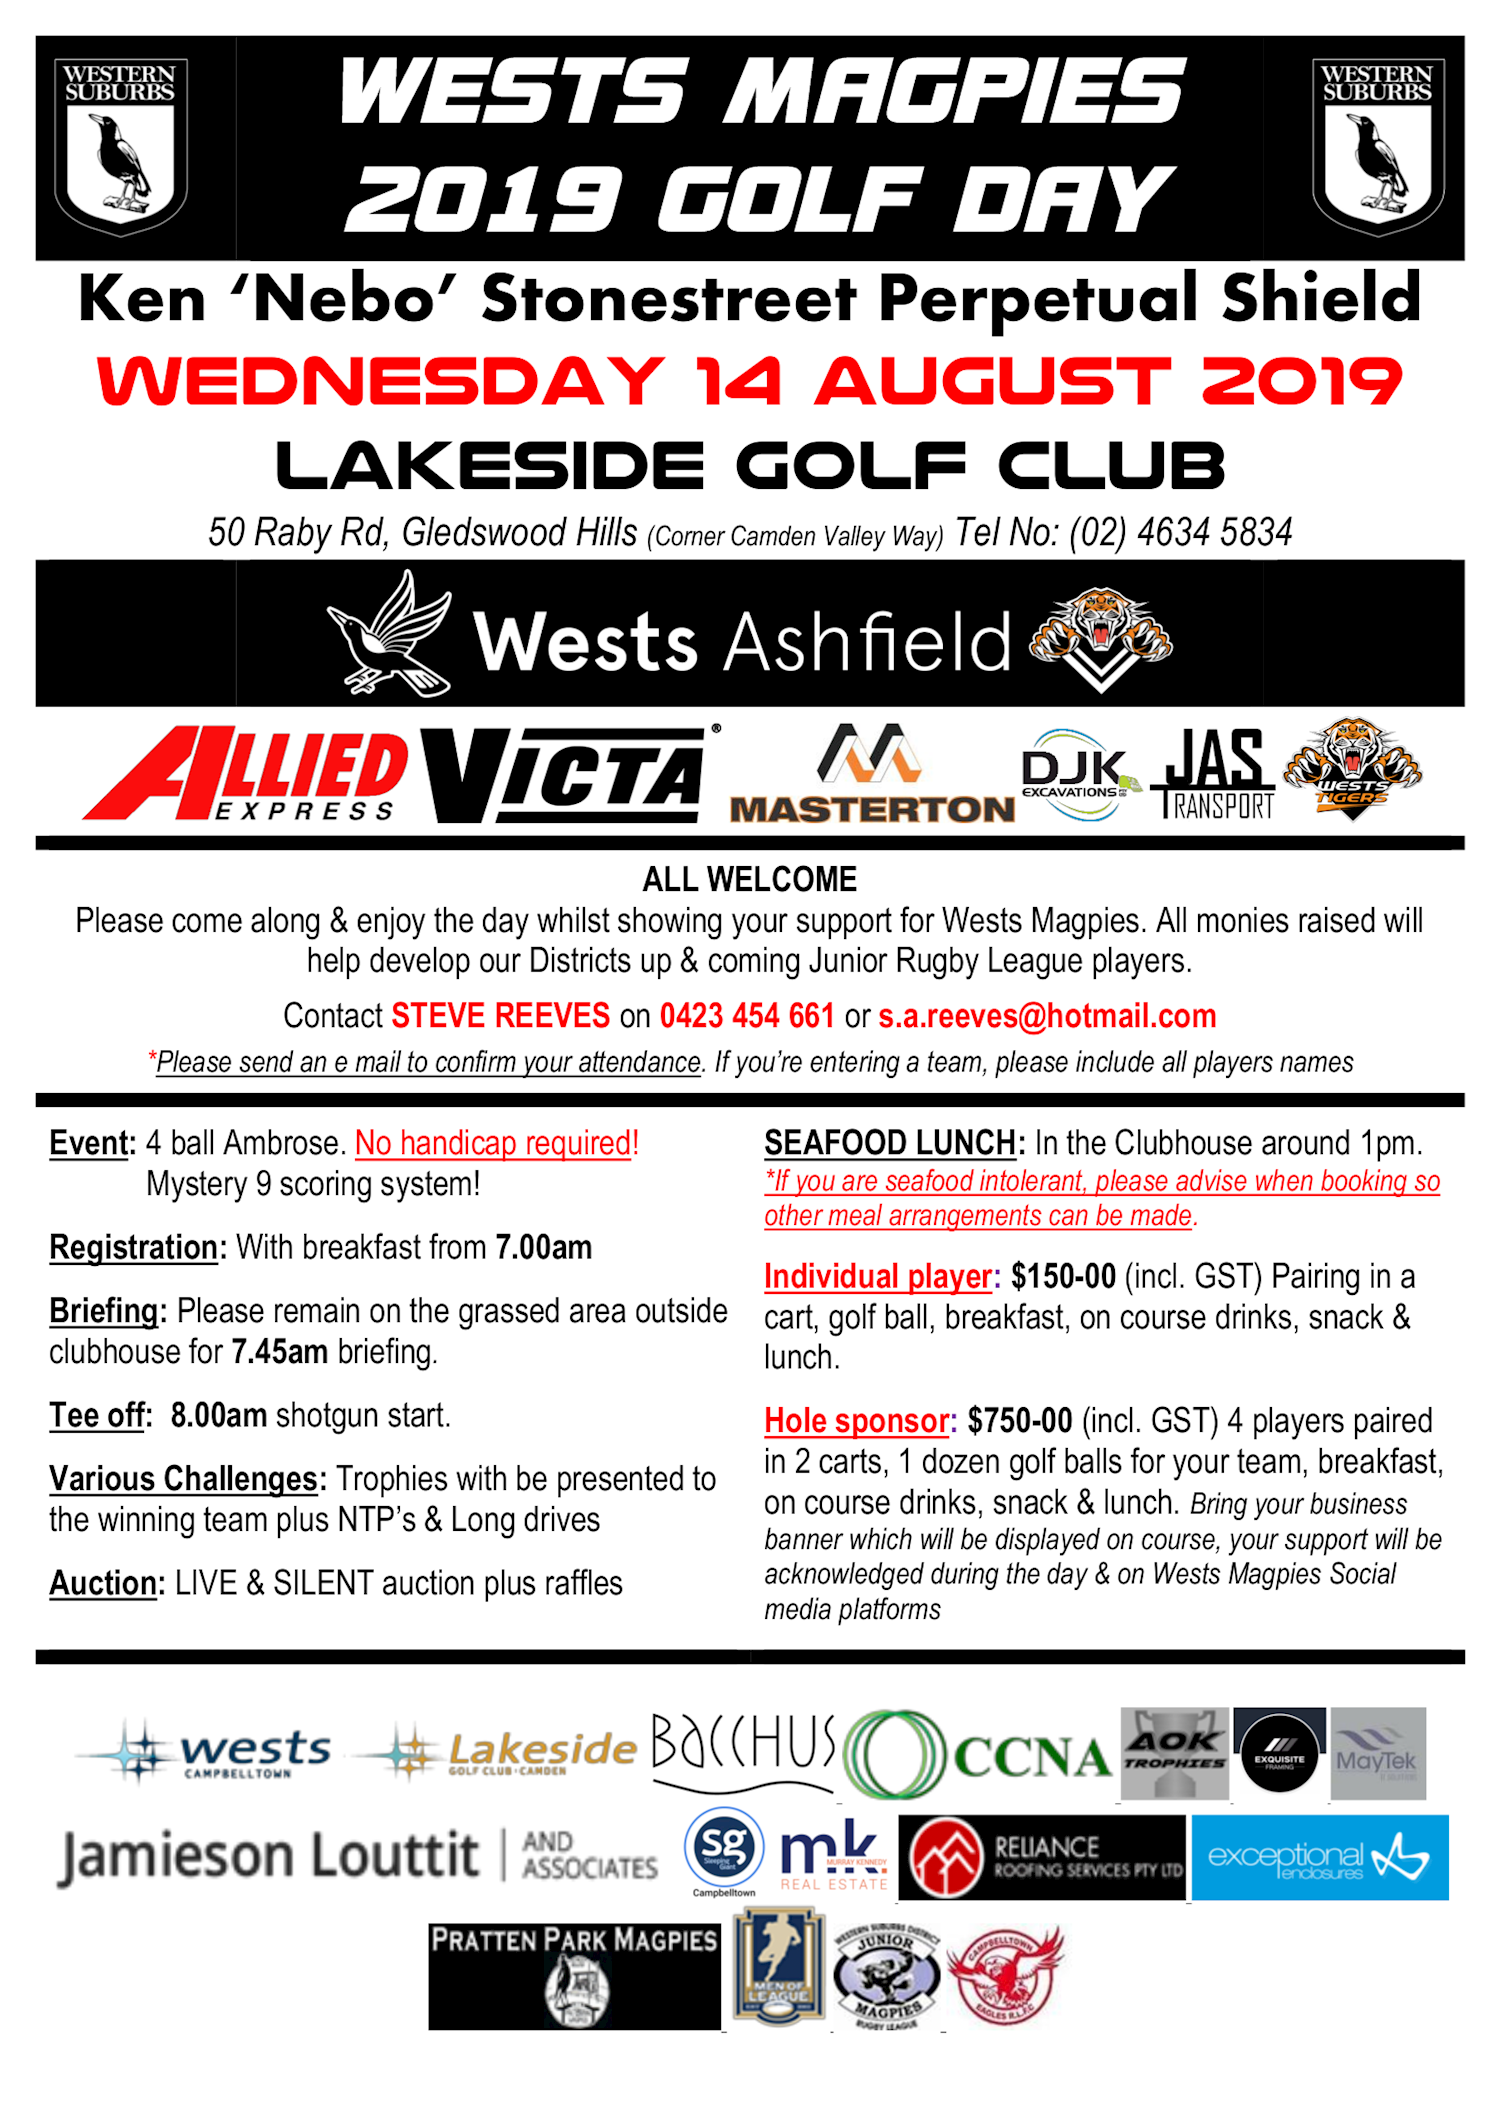 2019 Wests Magpies Golf Day